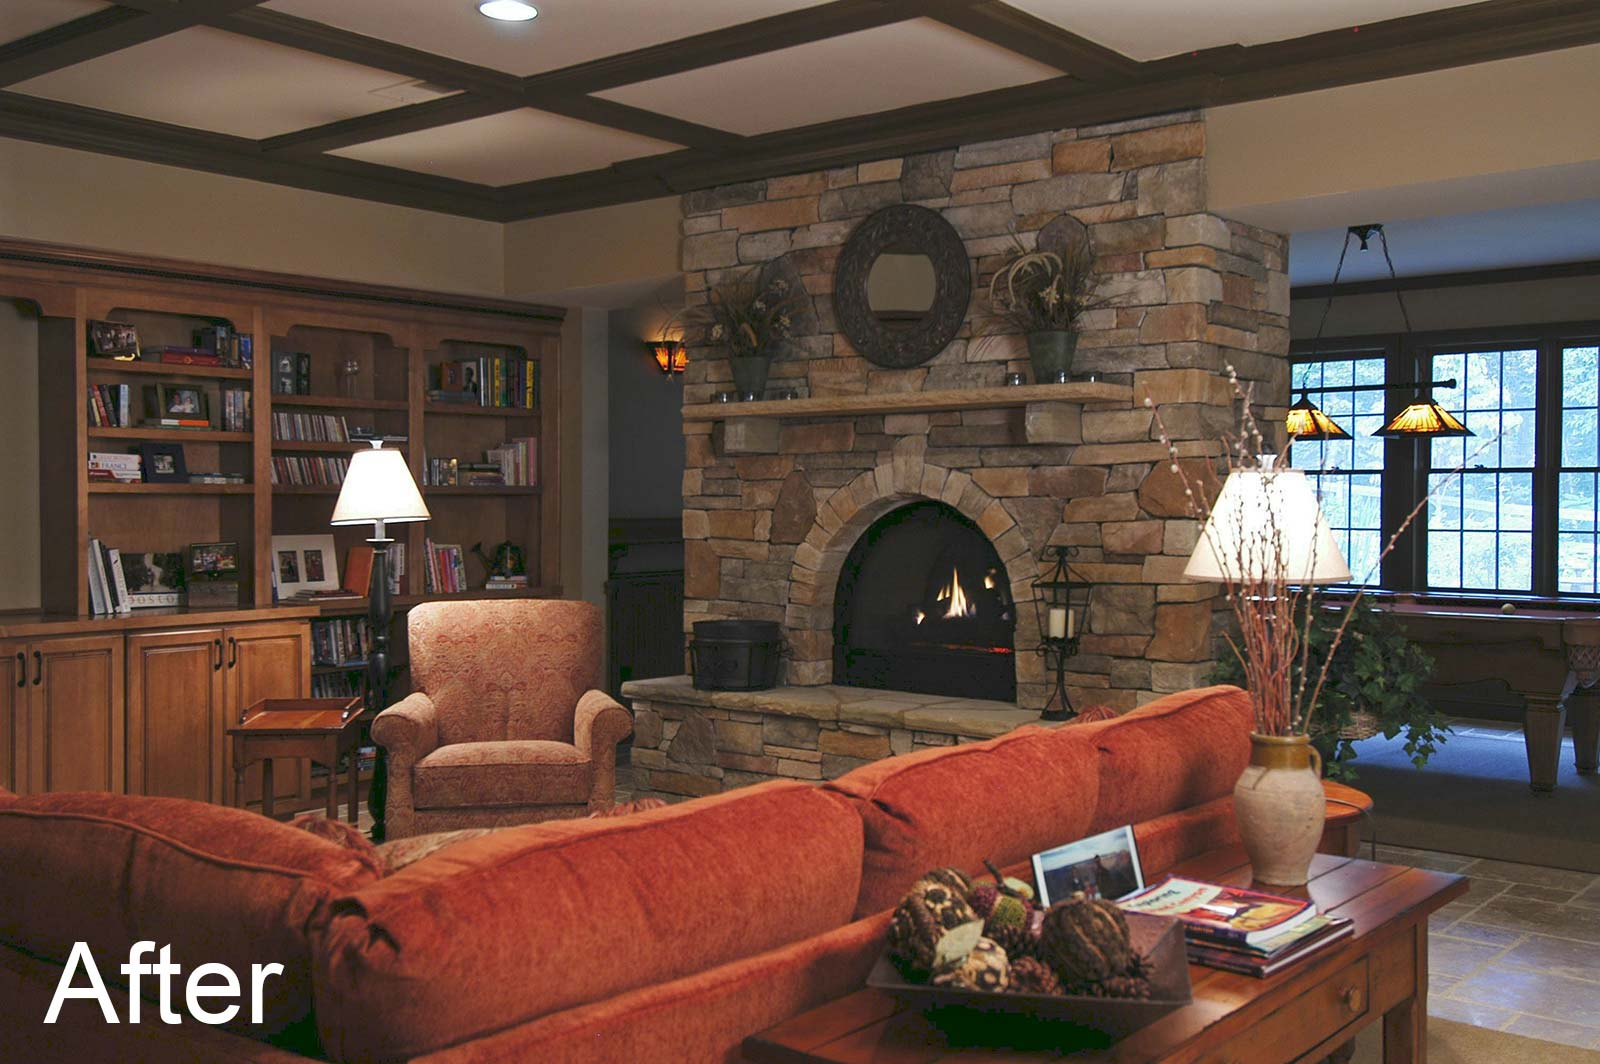 After fireplace was redesigned with various sized stones and an arched opening